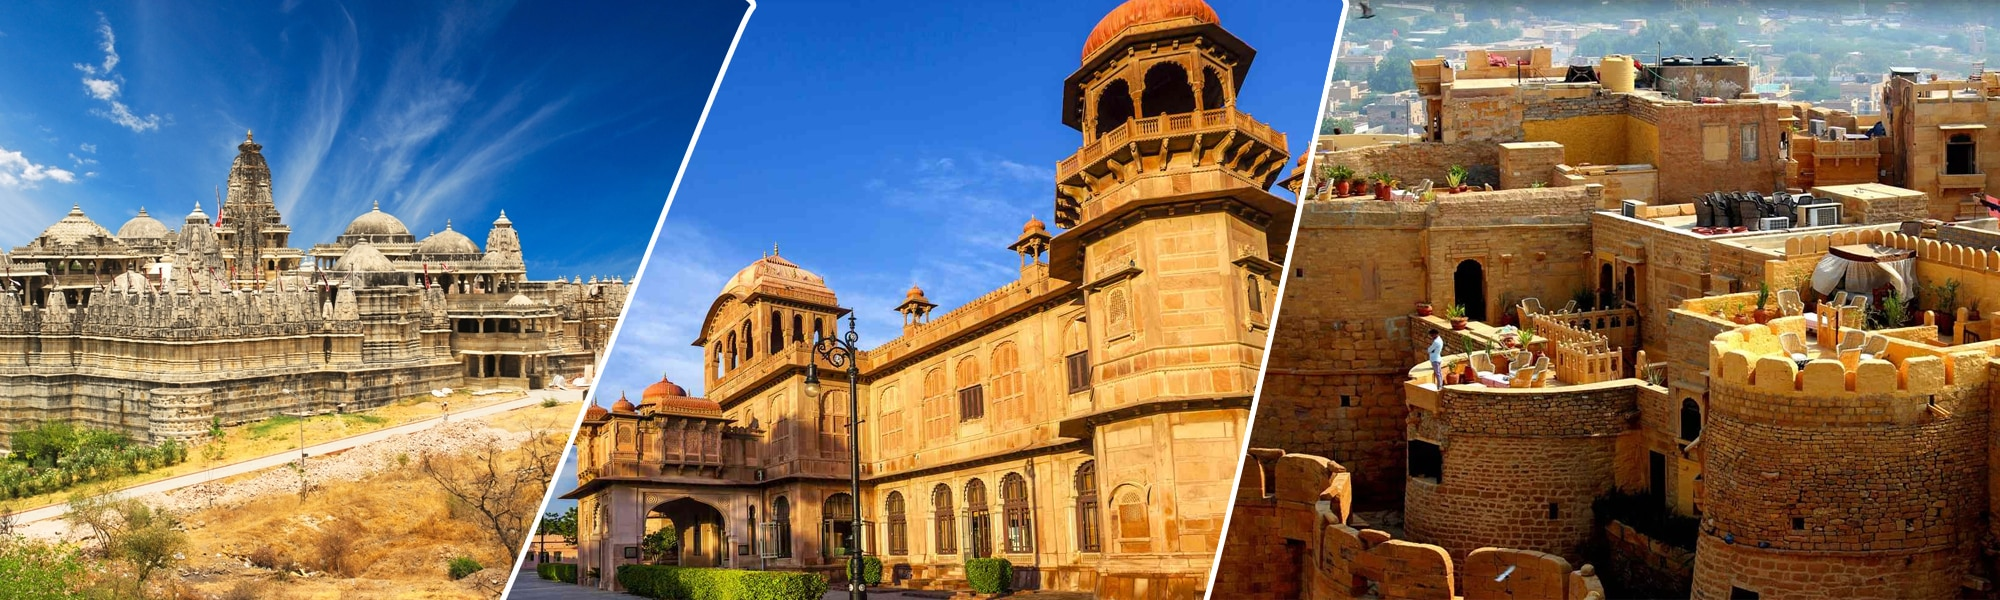 Agra, Delhi & Rajasthan– The Golden Triangle package Tour